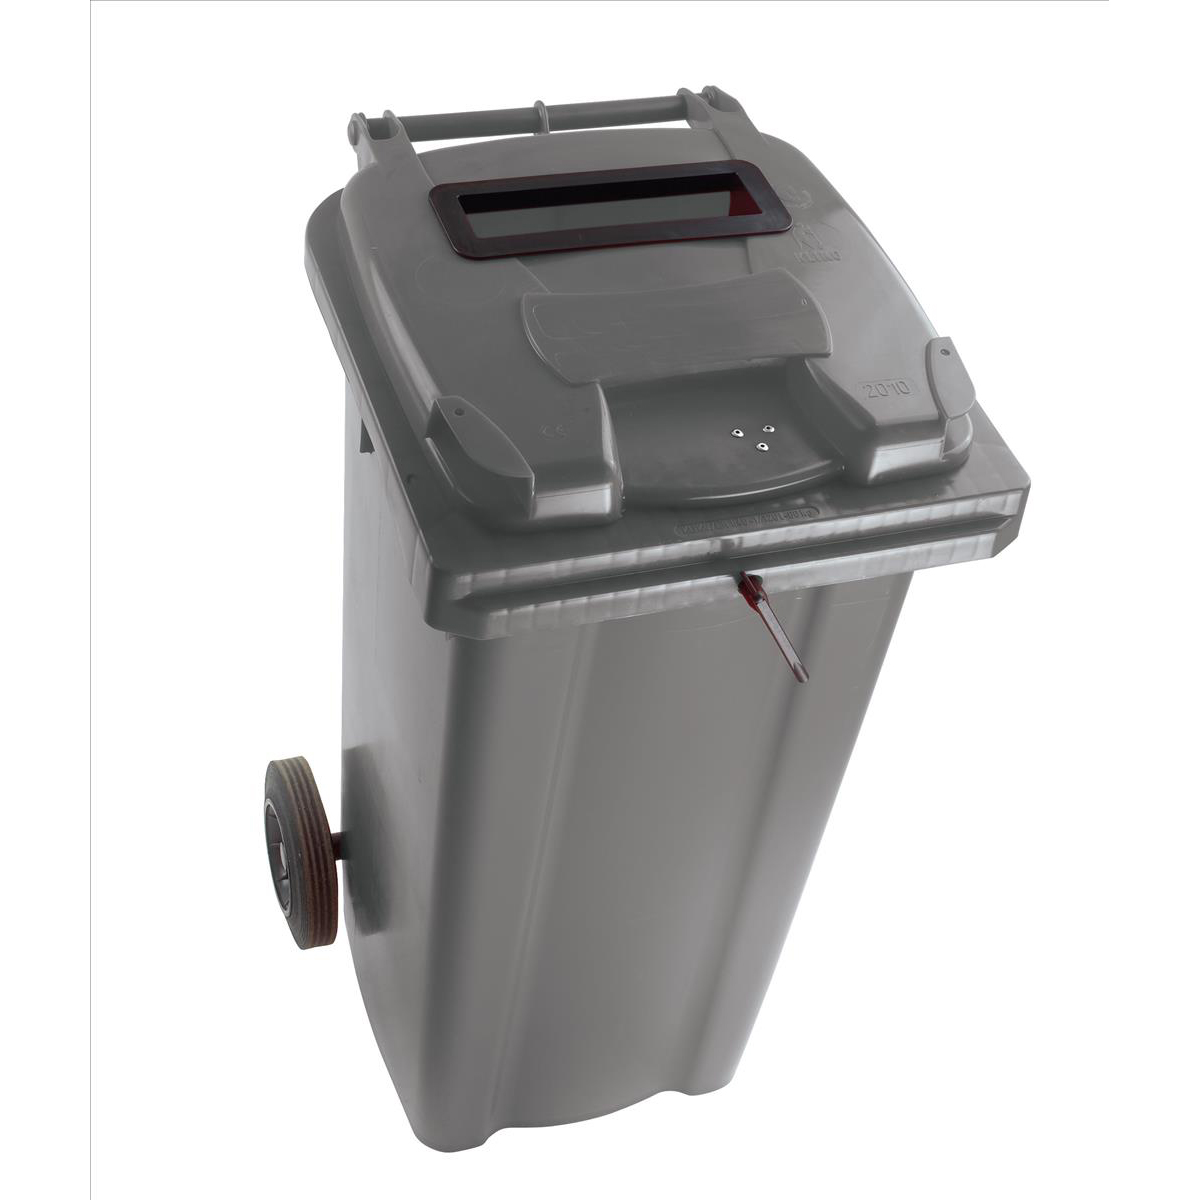 Wheeled Bin UV Stabilised Polyethylene with Rear Wheels Lid Lock 120 Litre Capacity 480x555x930mm Grey